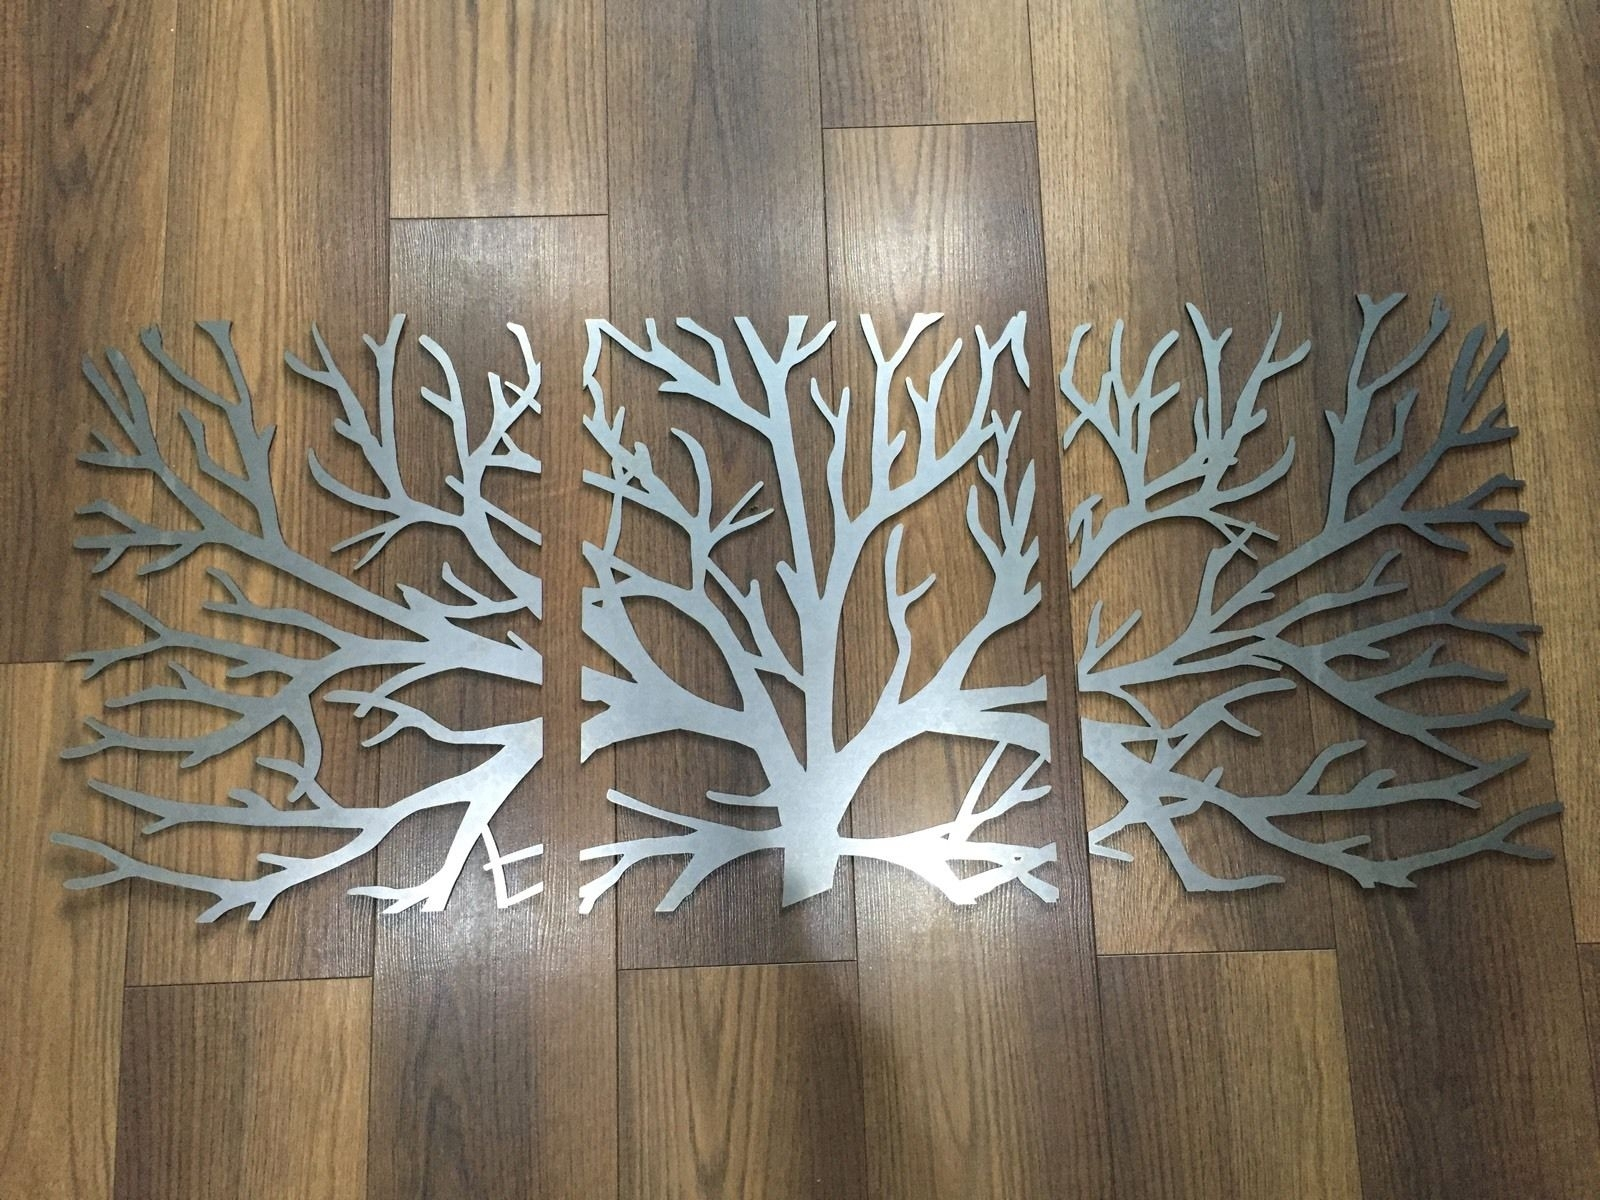 Wall Art Designs: Metal Wall Art Decor And Sculptures Wooden Metal Throughout Recent Abstract Outdoor Wall Art (View 4 of 20)